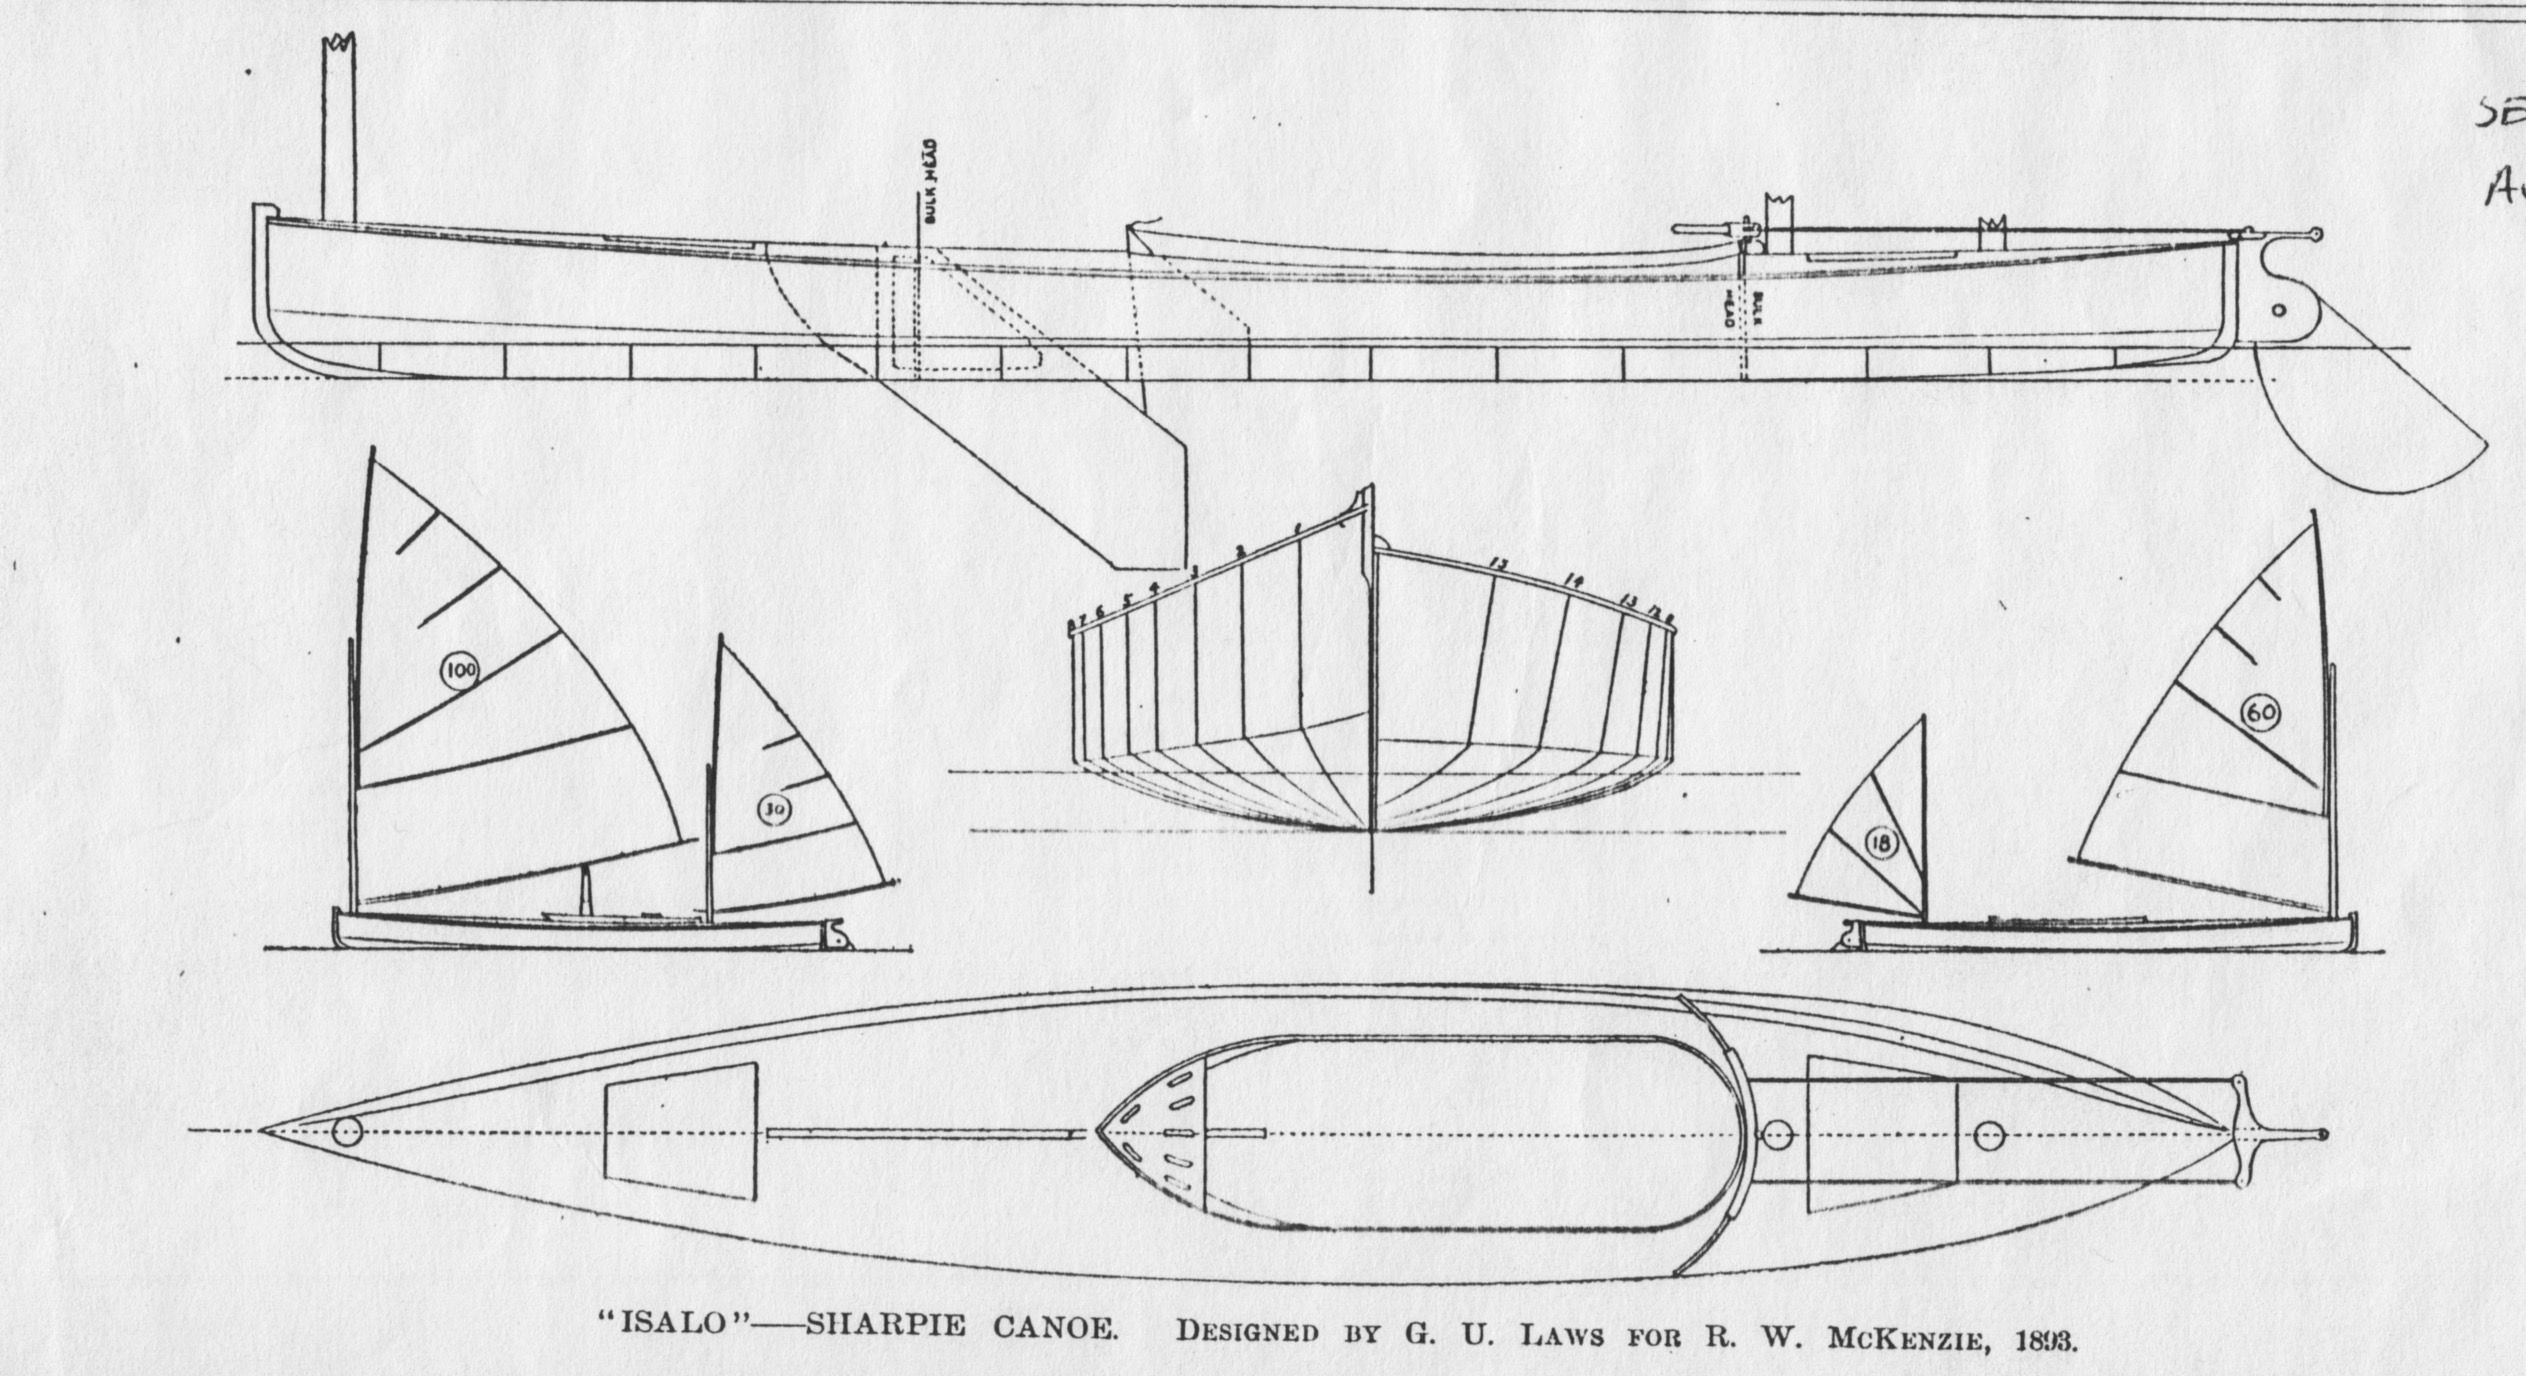 Pin By Douglas Joplin On Boat Plans And Lines